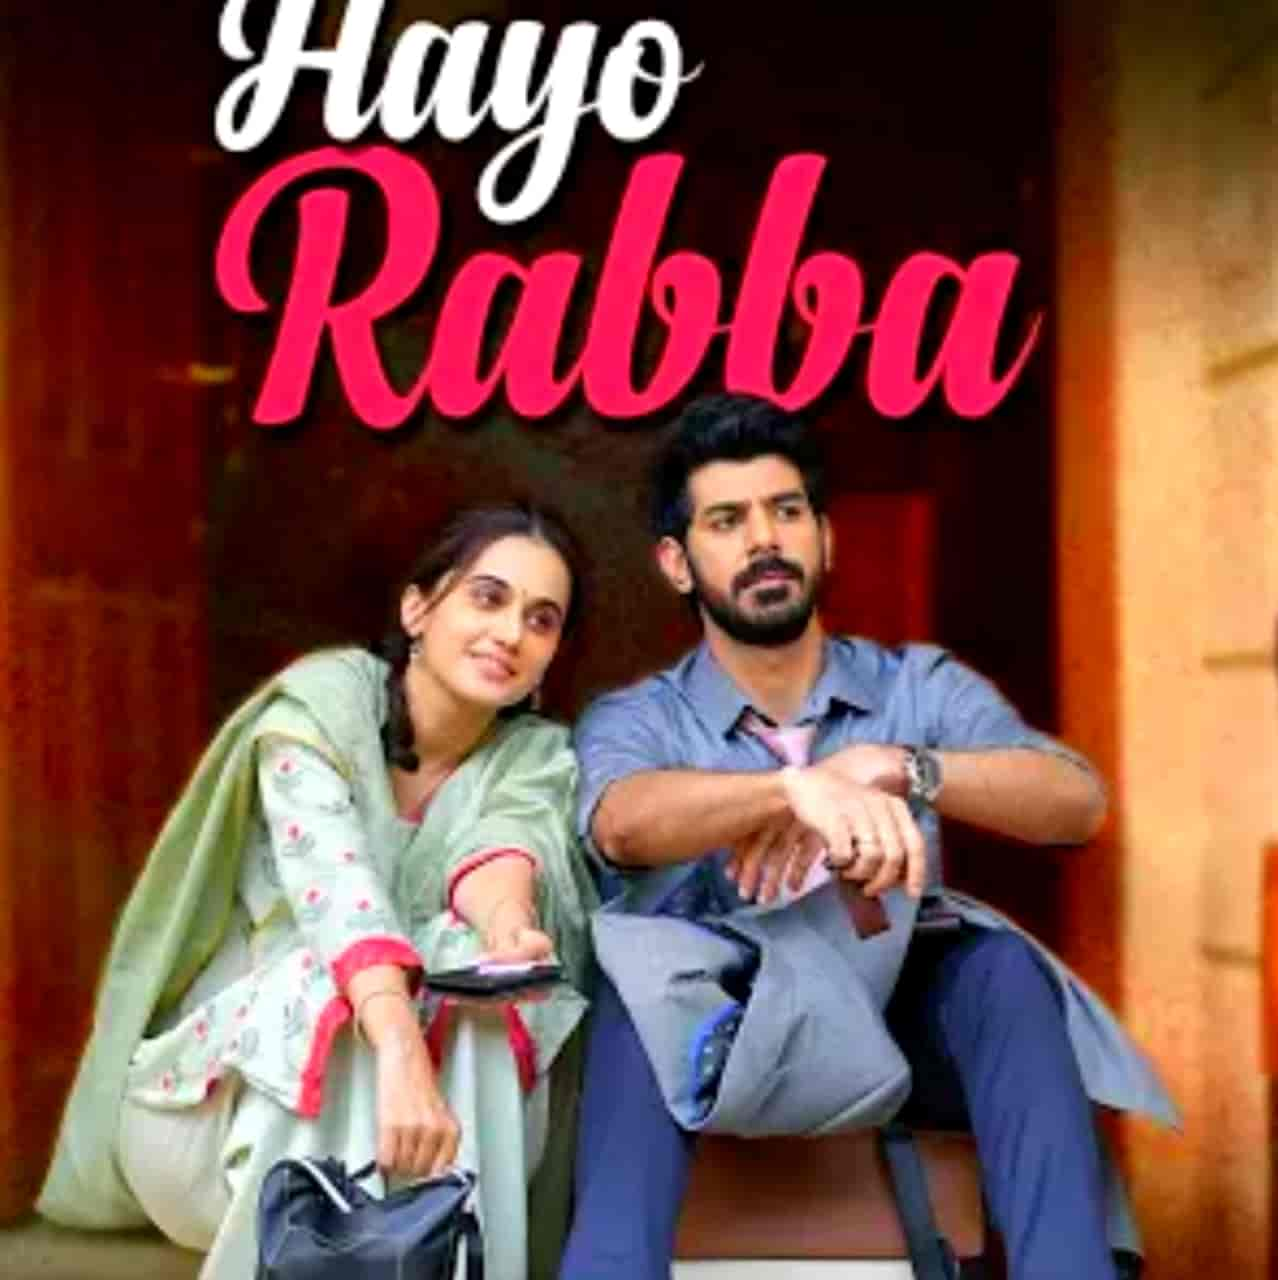 Hayo Rabba Lyrics :- Suvarna Tiwari given her voice in the beautiful sad song which is titled Hayo Rabba from Taapsee Pannu starrer movie Thappad. Music of this song recreated by Anurag Saikia while this song Hayo Rabba Lyrics has penned by Shakeel Azmi. This song is presented by T-Series.